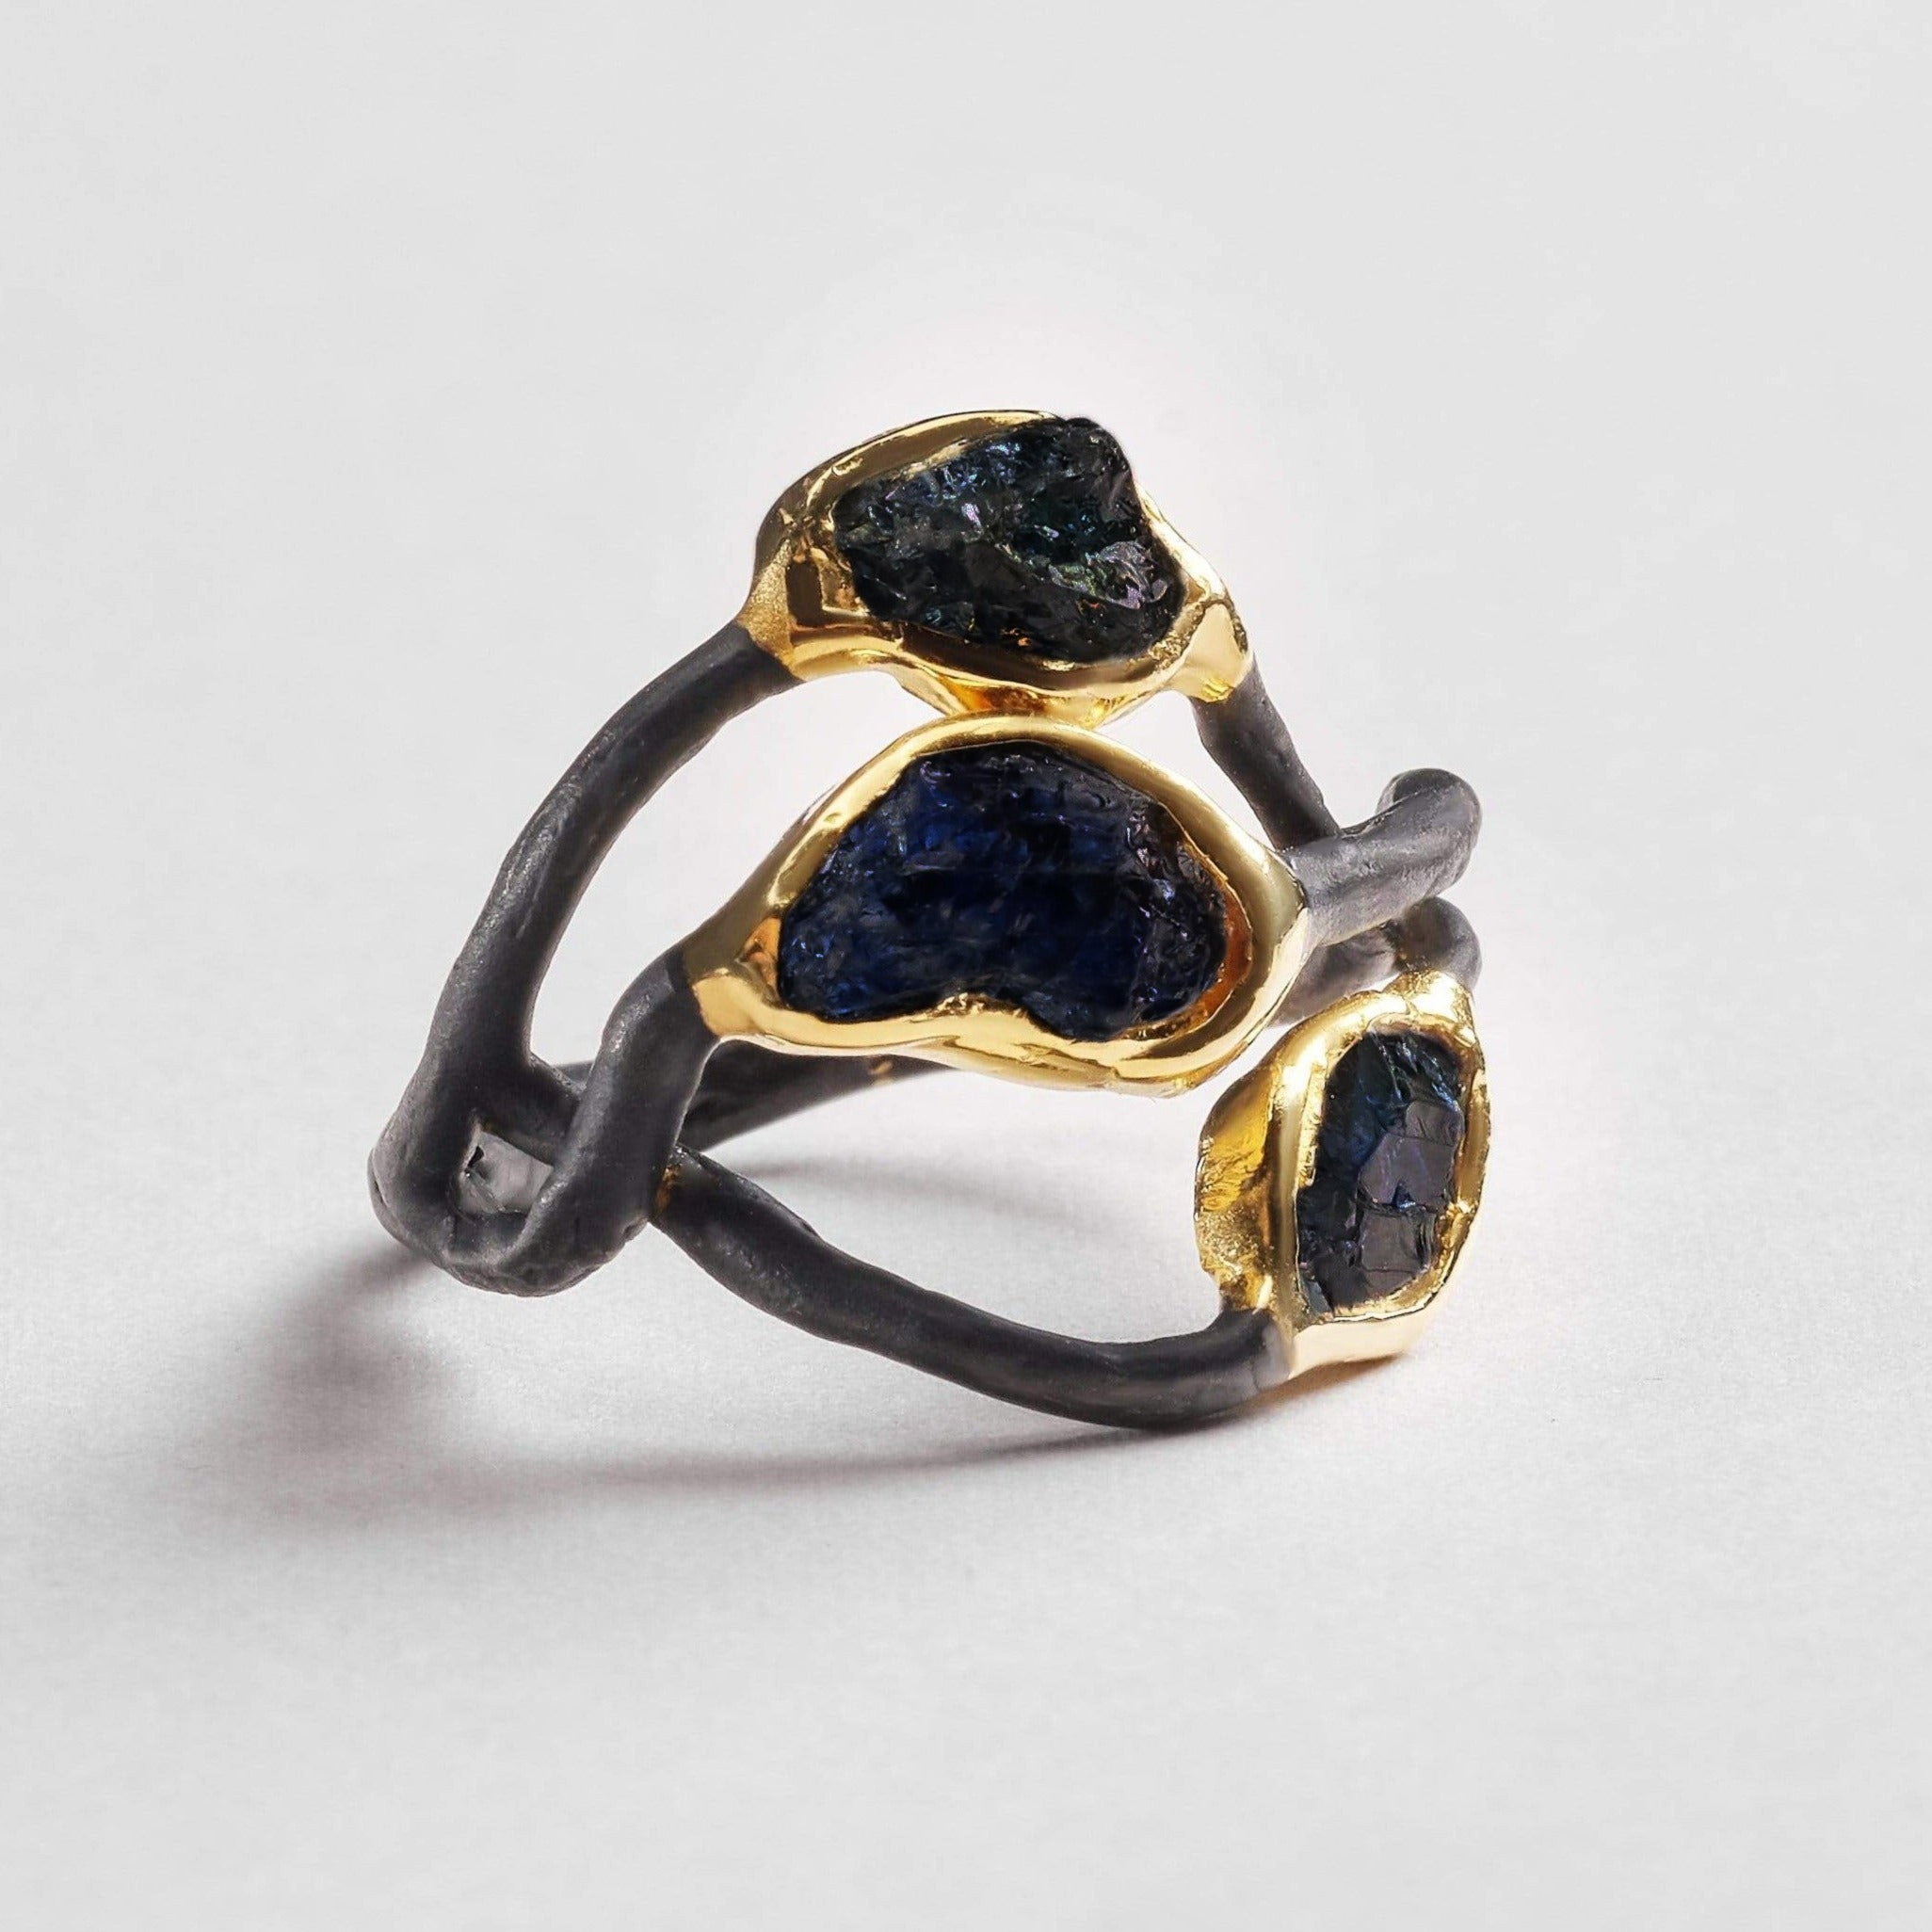 Awen Ring, Anthracite, black, Gold, Handmade, Sapphire, spo-disabled, StoneColor:DeepBlue, Style:Delicate, Type:BlackAnthracite, Type:StoneCandyDelicate Ring